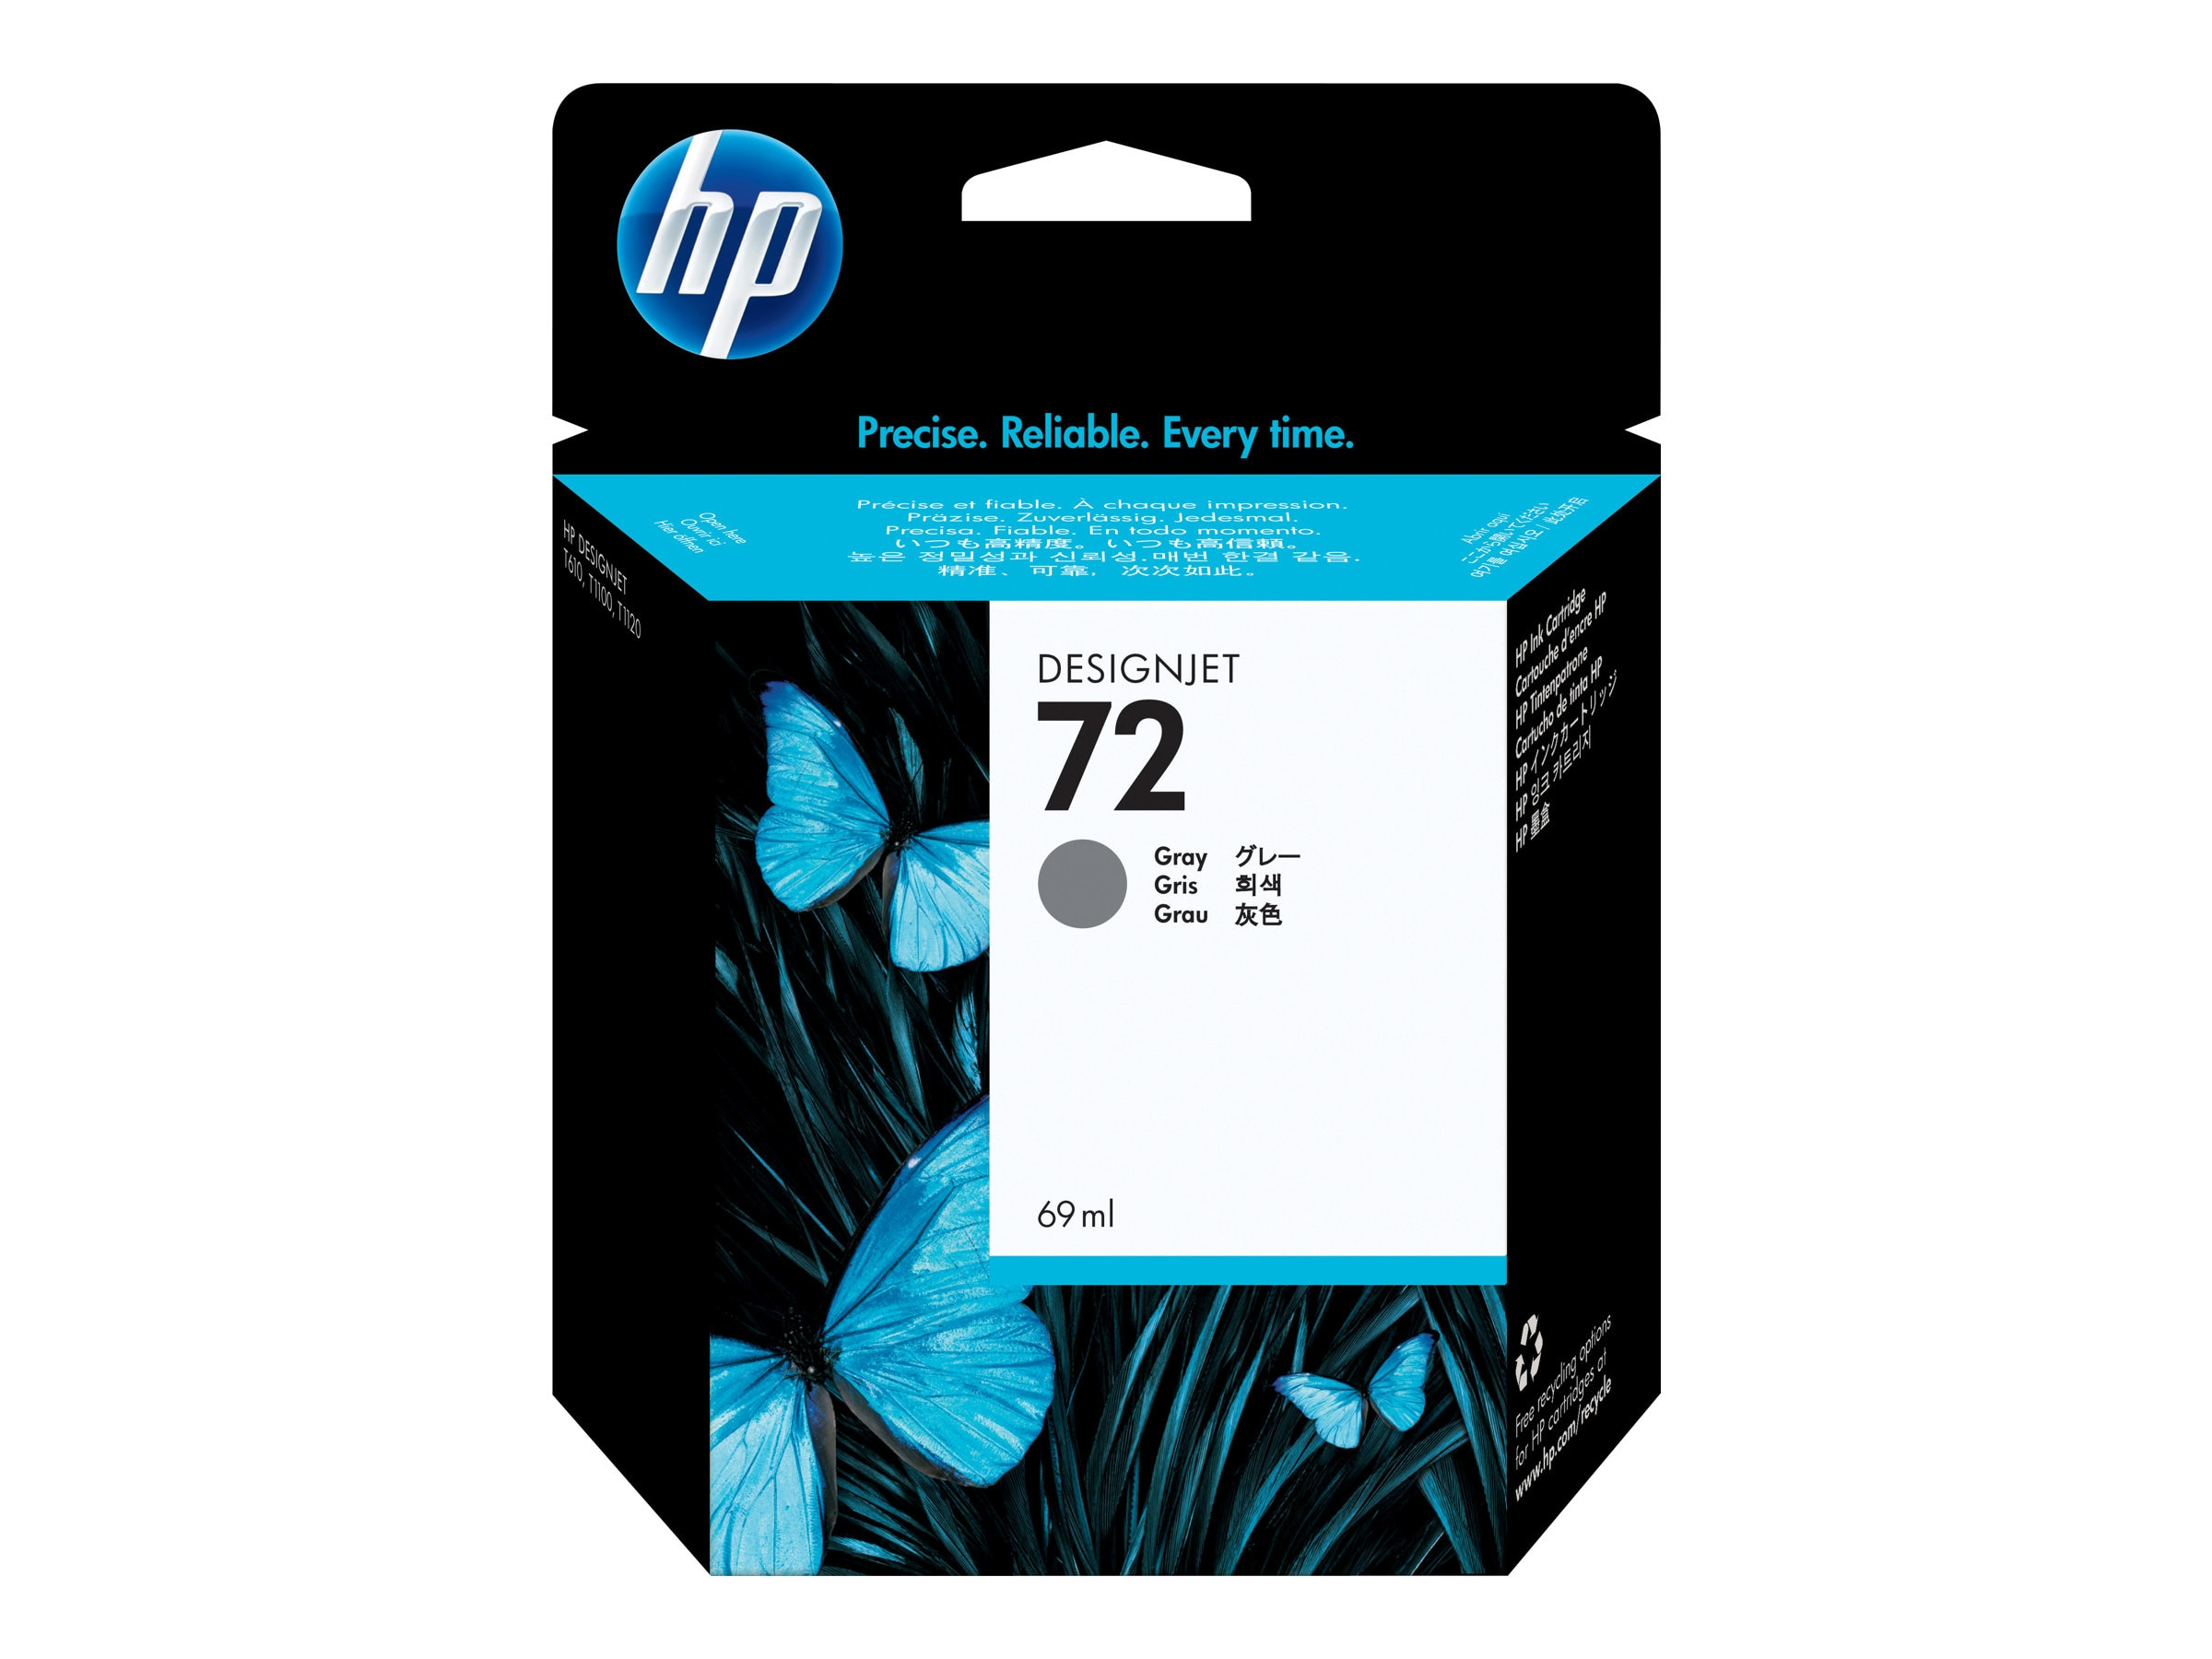 HP 72 Gray Ink Cartridge (69ml), C9401A, 7624650, Ink Cartridges & Ink Refill Kits